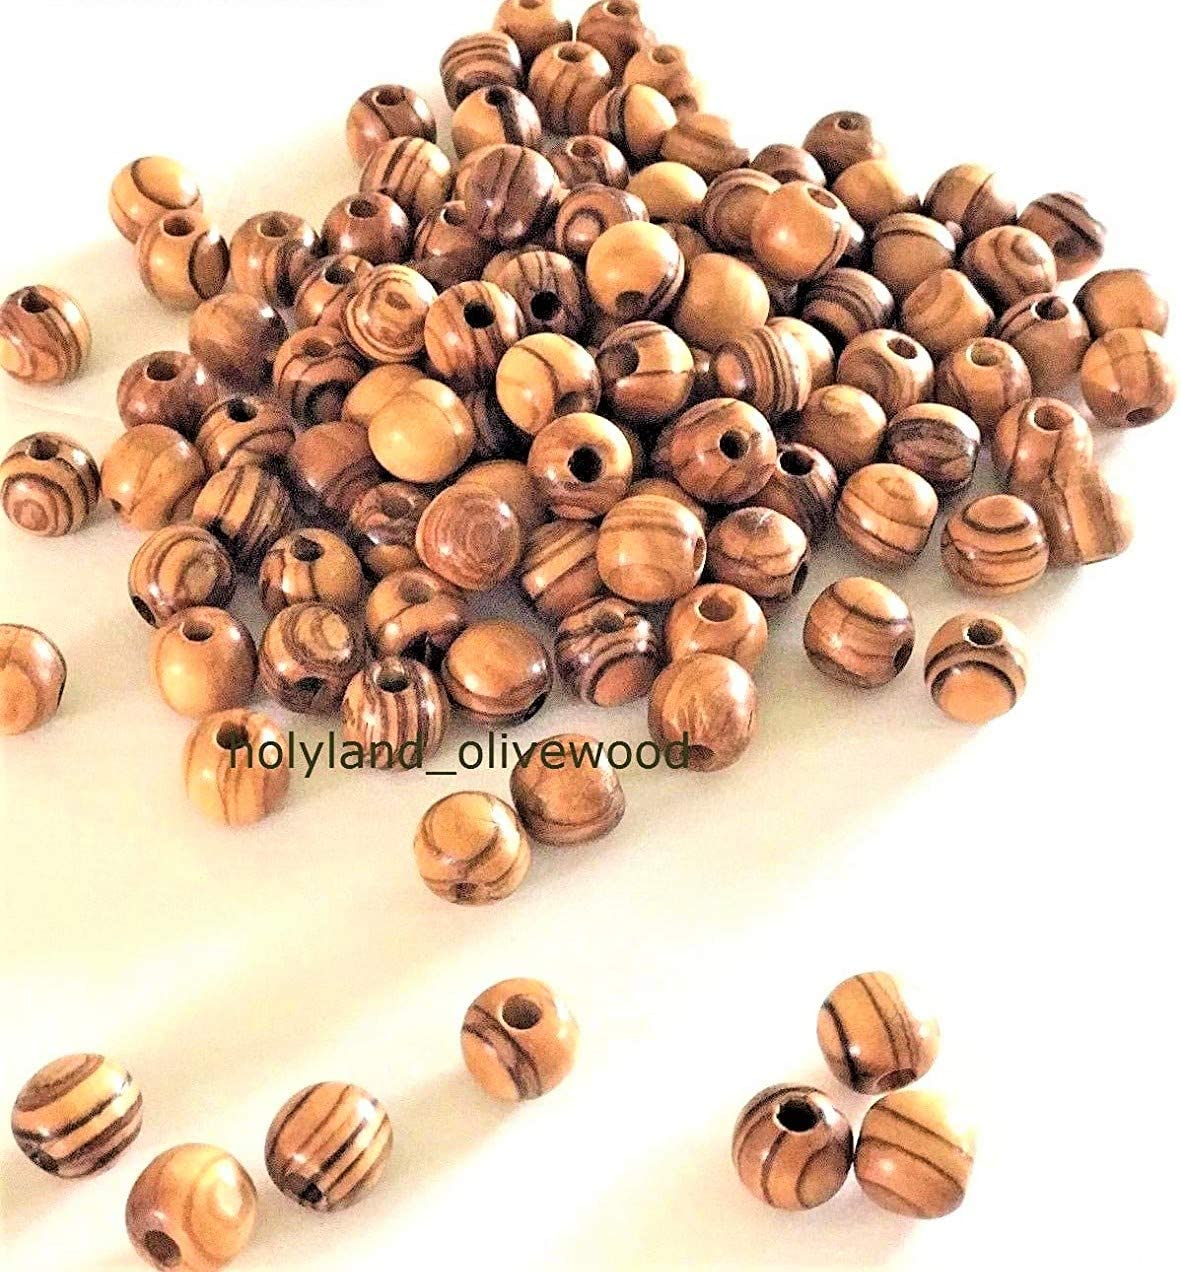 1000 ~ 10mm Olive Wood Round Rosary Direct sale of manufacturer El Paso Mall Beads Polished Hol Jewelry